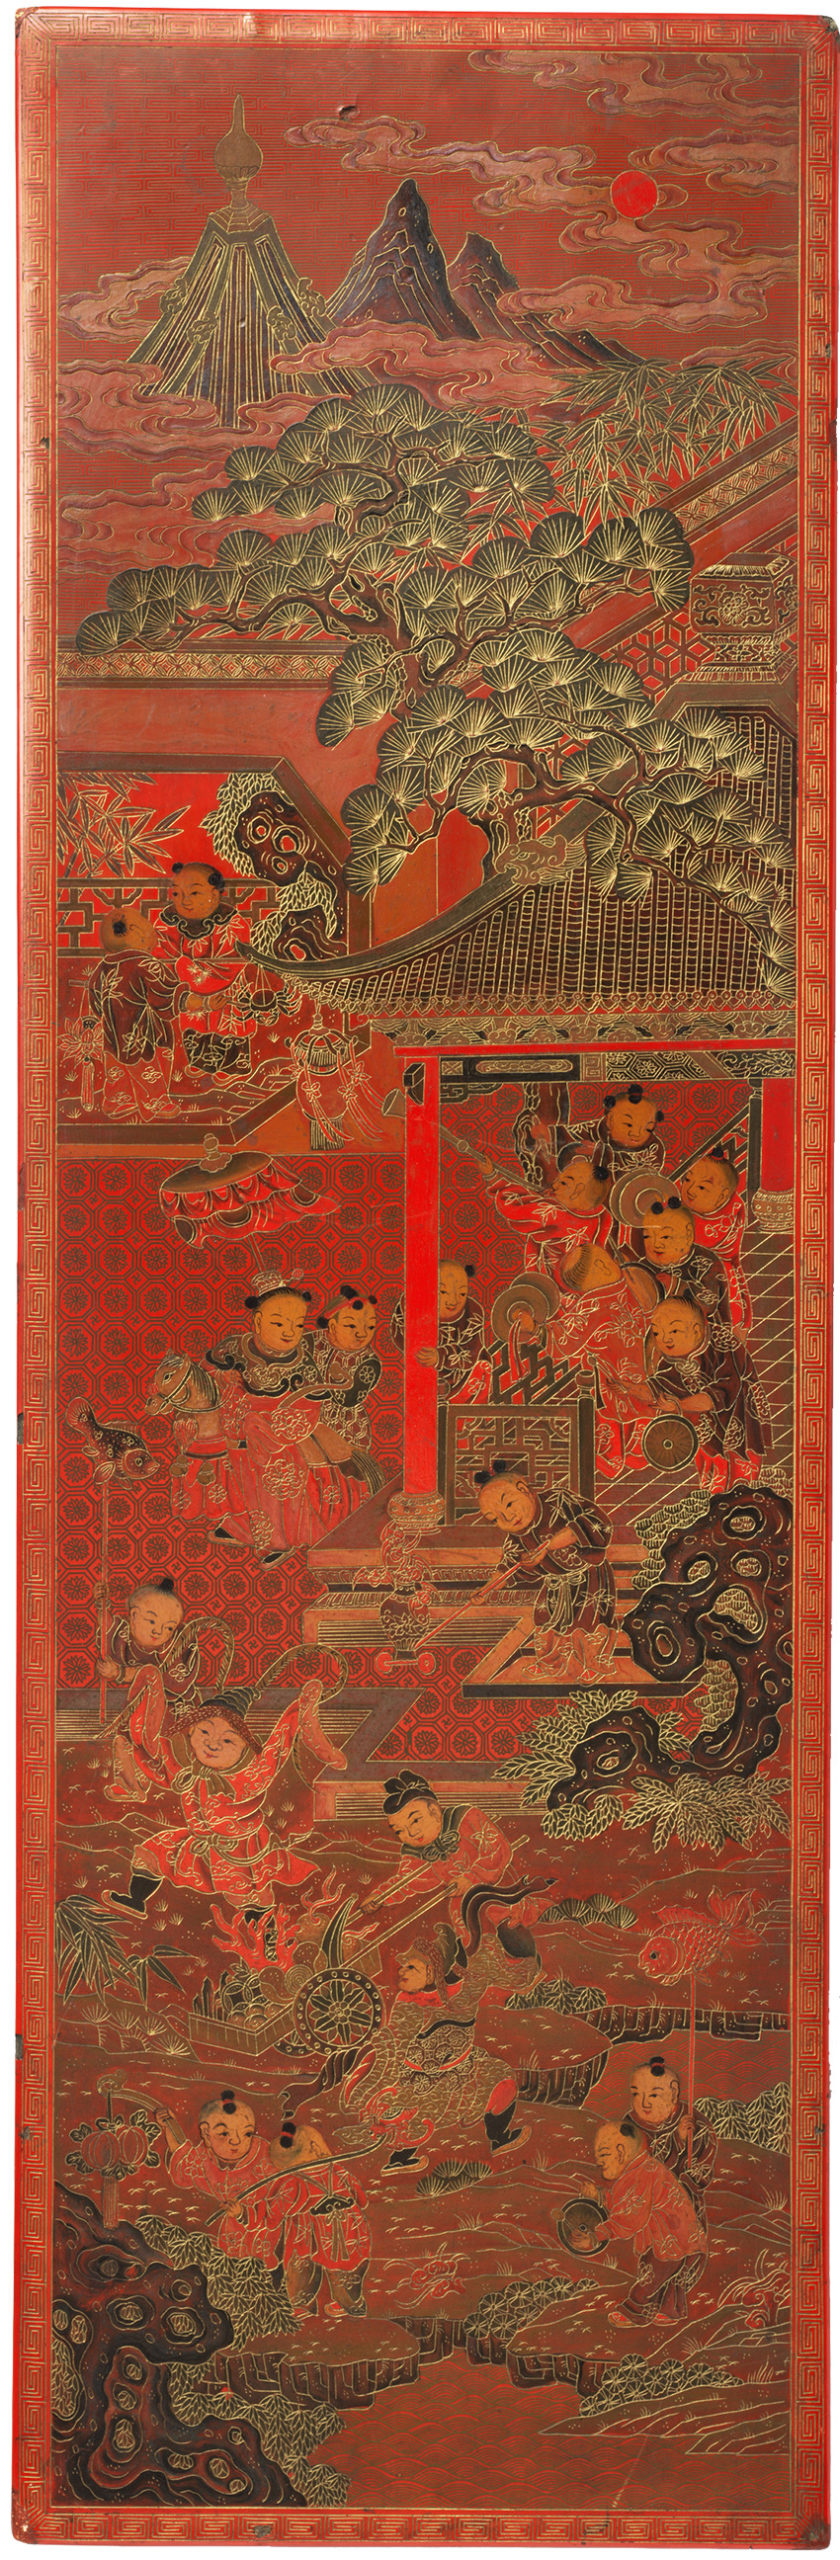 Children-to-Inmortals_MET-Museum_Box-with-boys-at-play_Qing-dynasty-_DP-19330-006_850-scaled